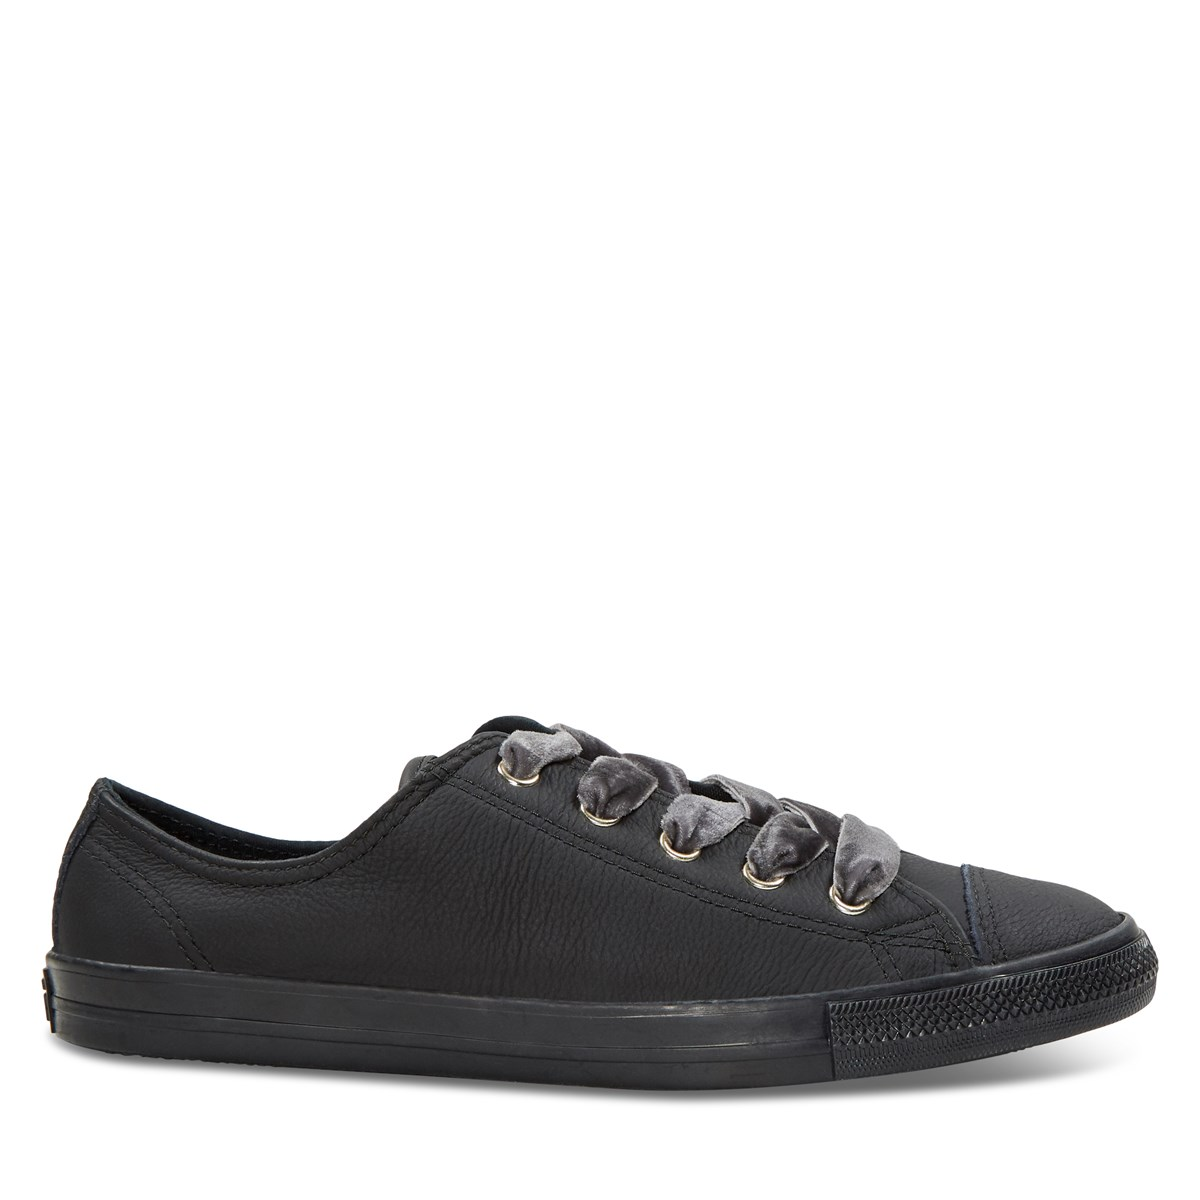 Women's Chuck Taylor Dainty Leather Sneakers in Black